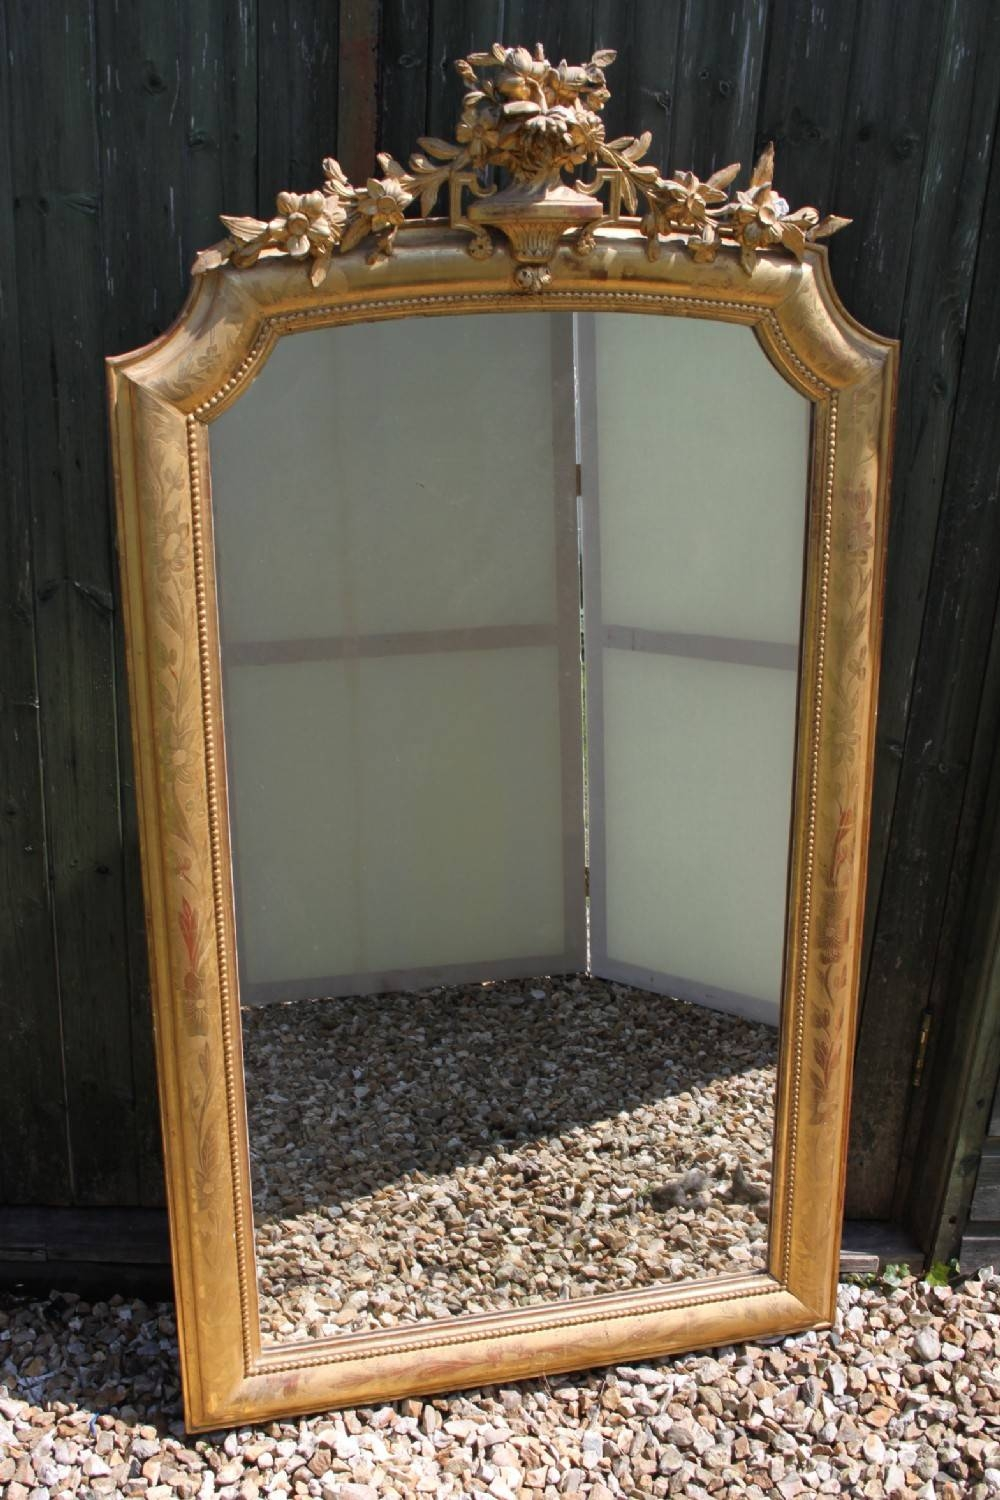 Antique Gilt Mirror | 280421 | Sellingantiques.co.uk inside Antique Gilt Mirrors (Image 12 of 25)